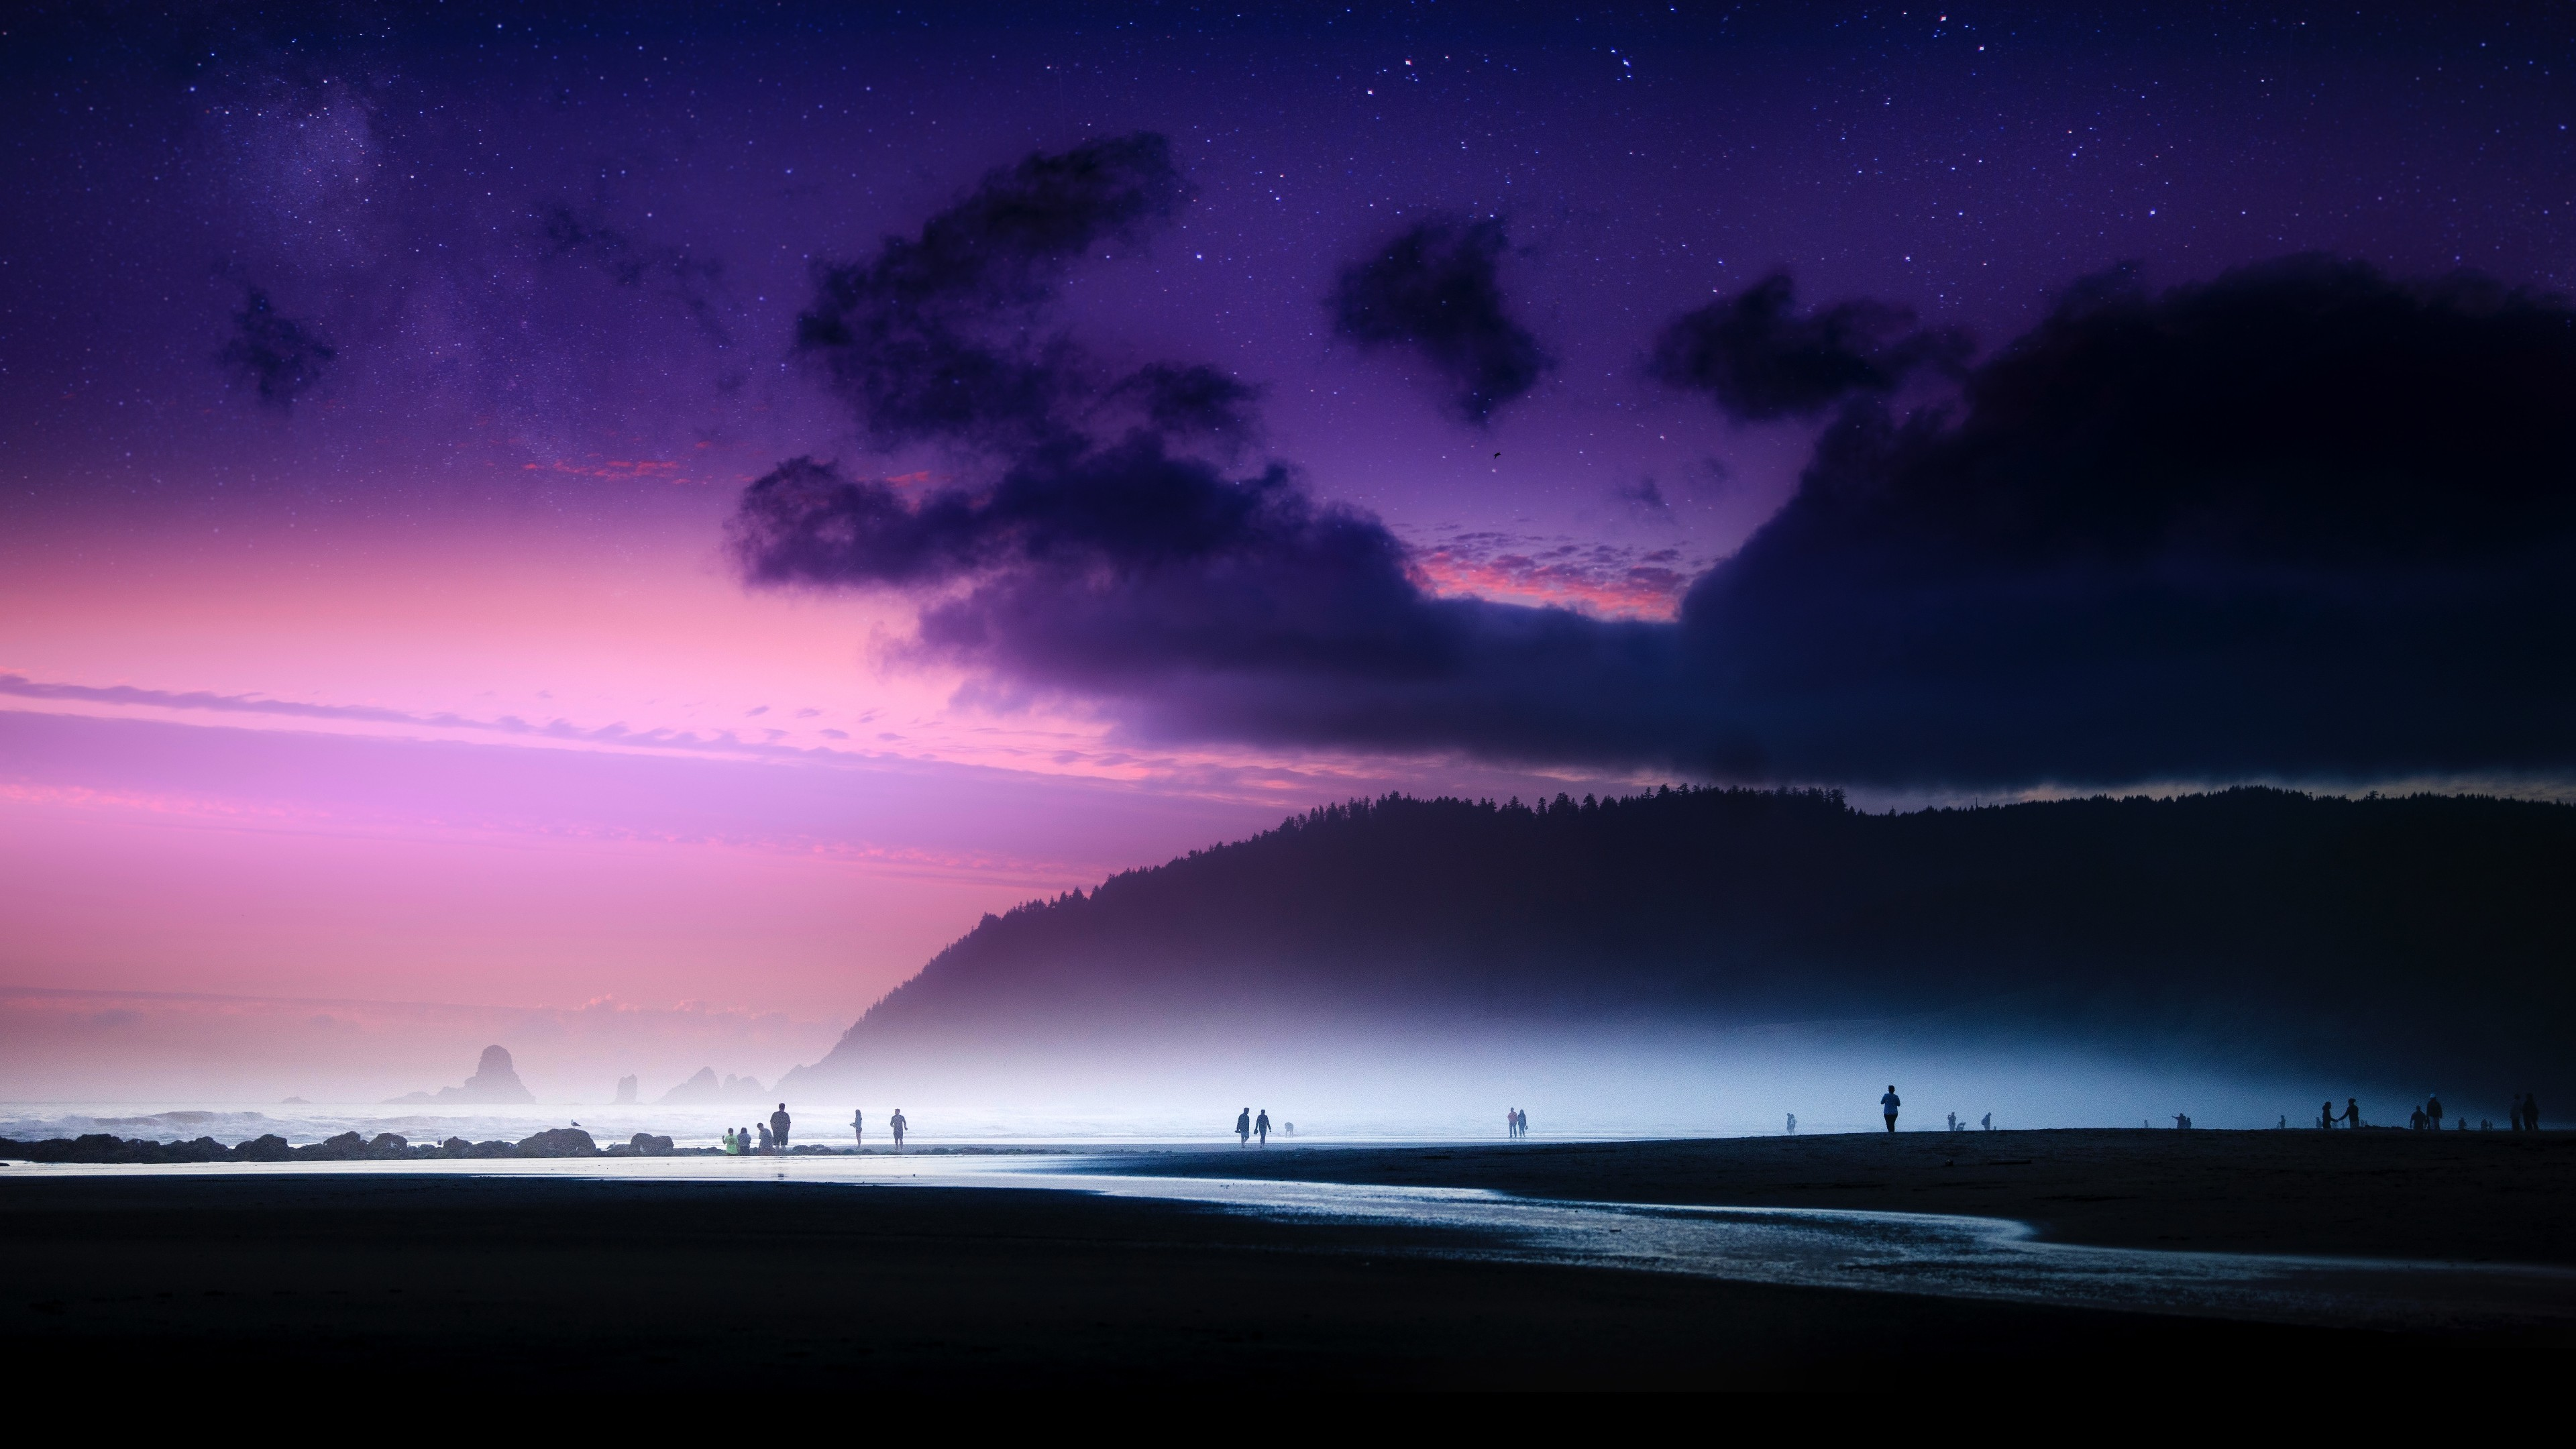 Nightlife on the Cannon Beach wallpaper